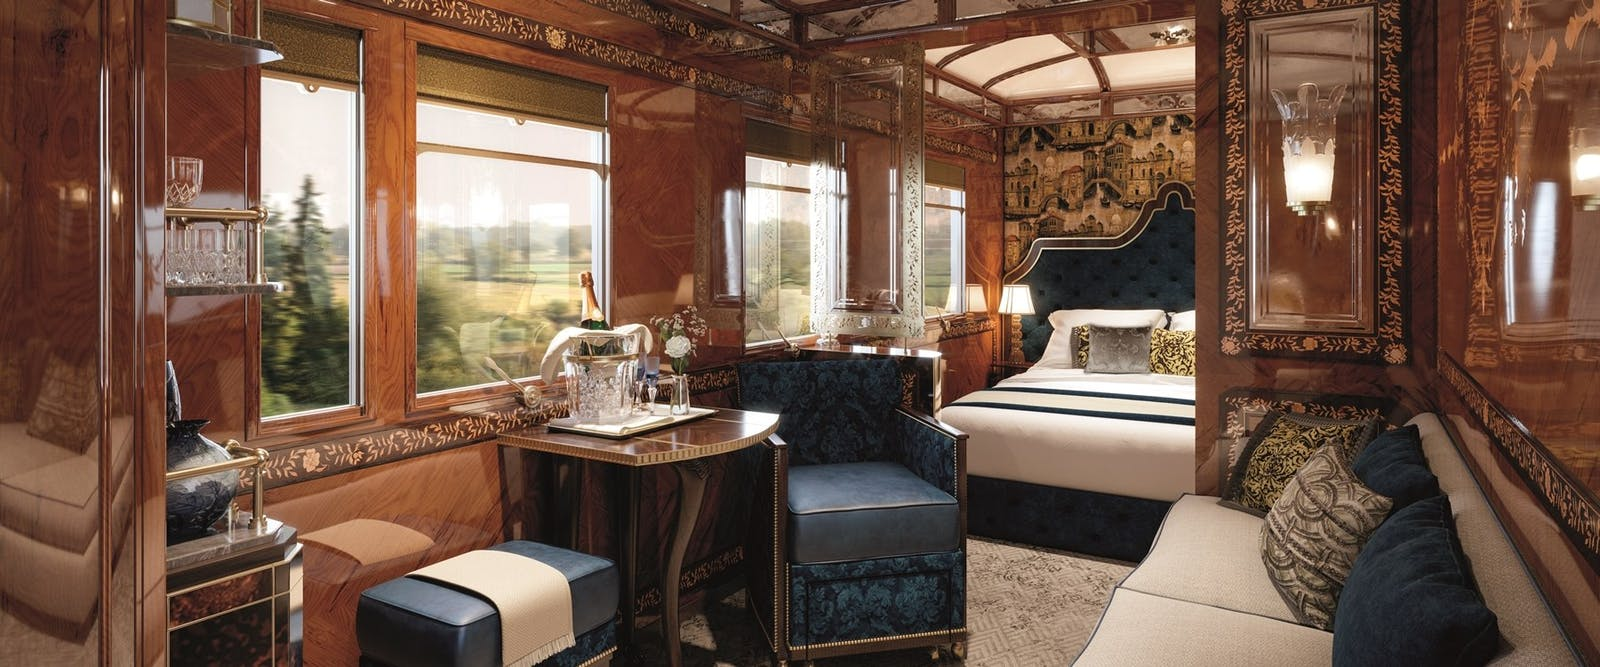 Spacious rooms on board Venice Simplon-Orient-Express, Venice, Italy